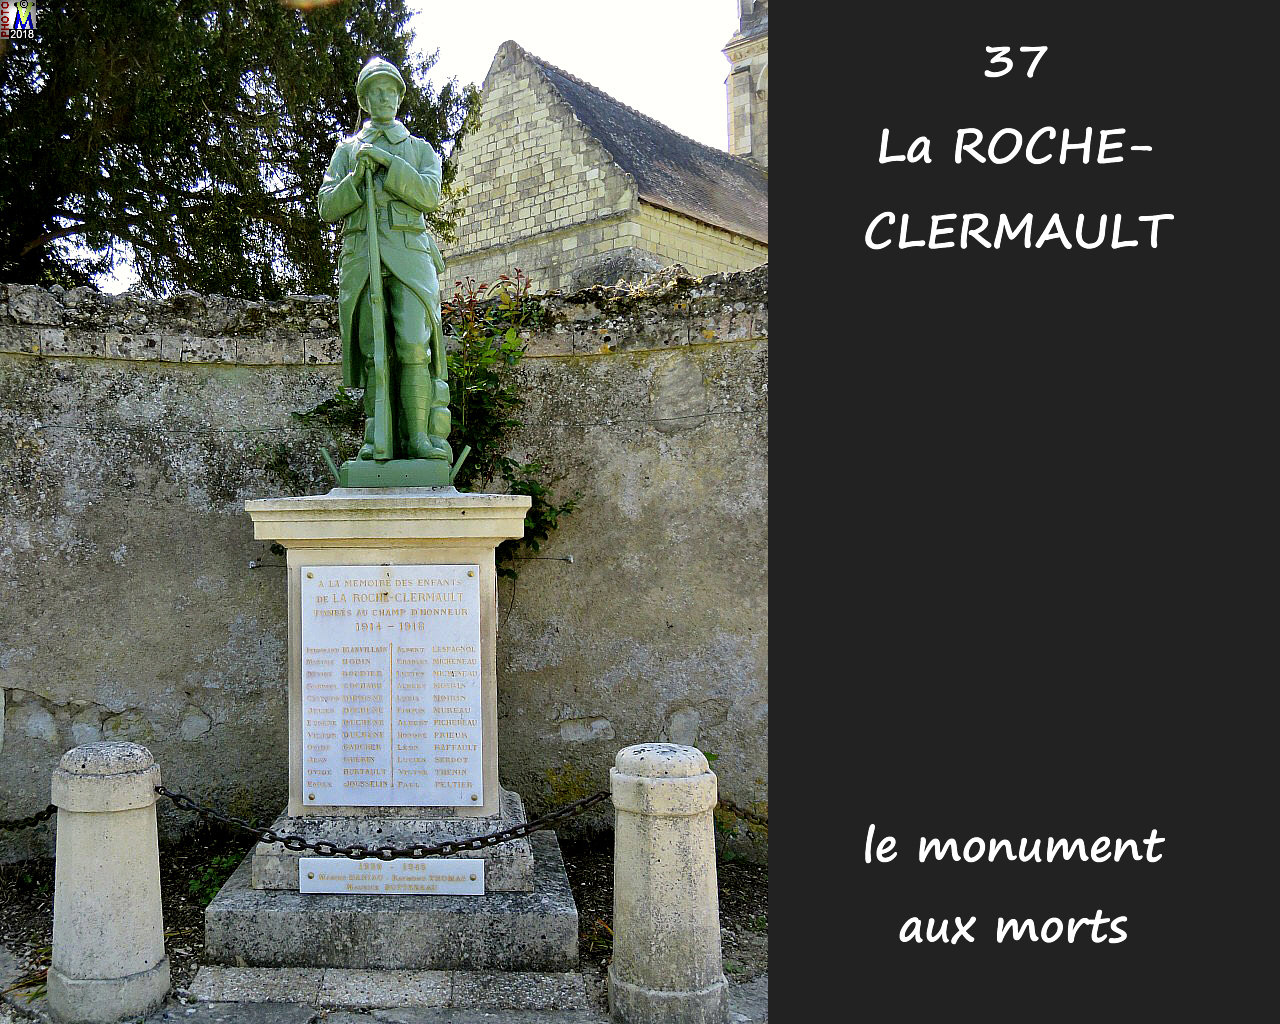 37ROCHE-CLERMAULT_morts_1000.jpg